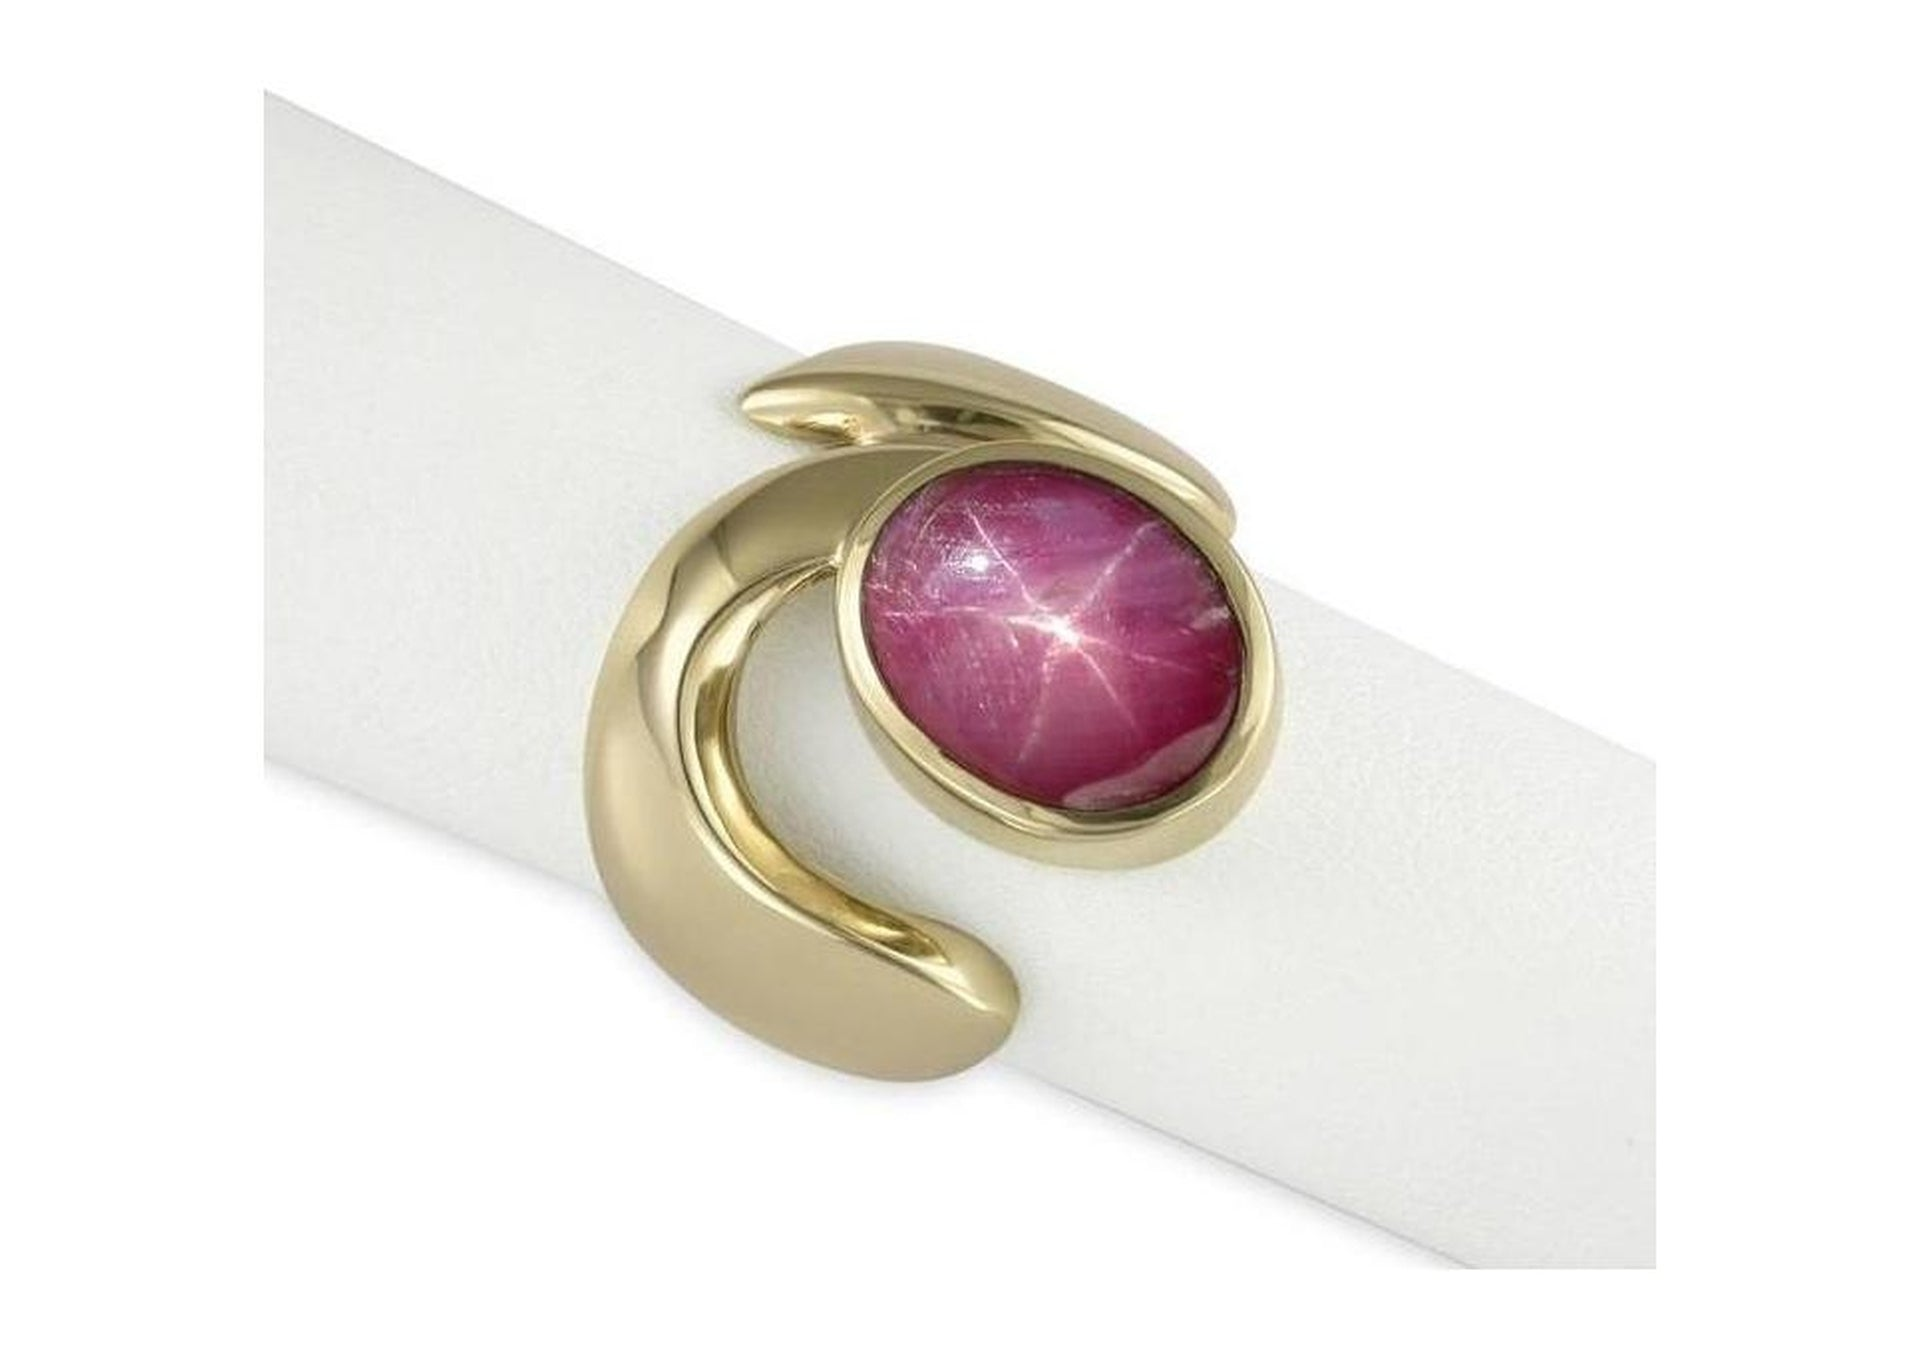 9ct Gold & Simulated Star Ruby   - Jens Hansen